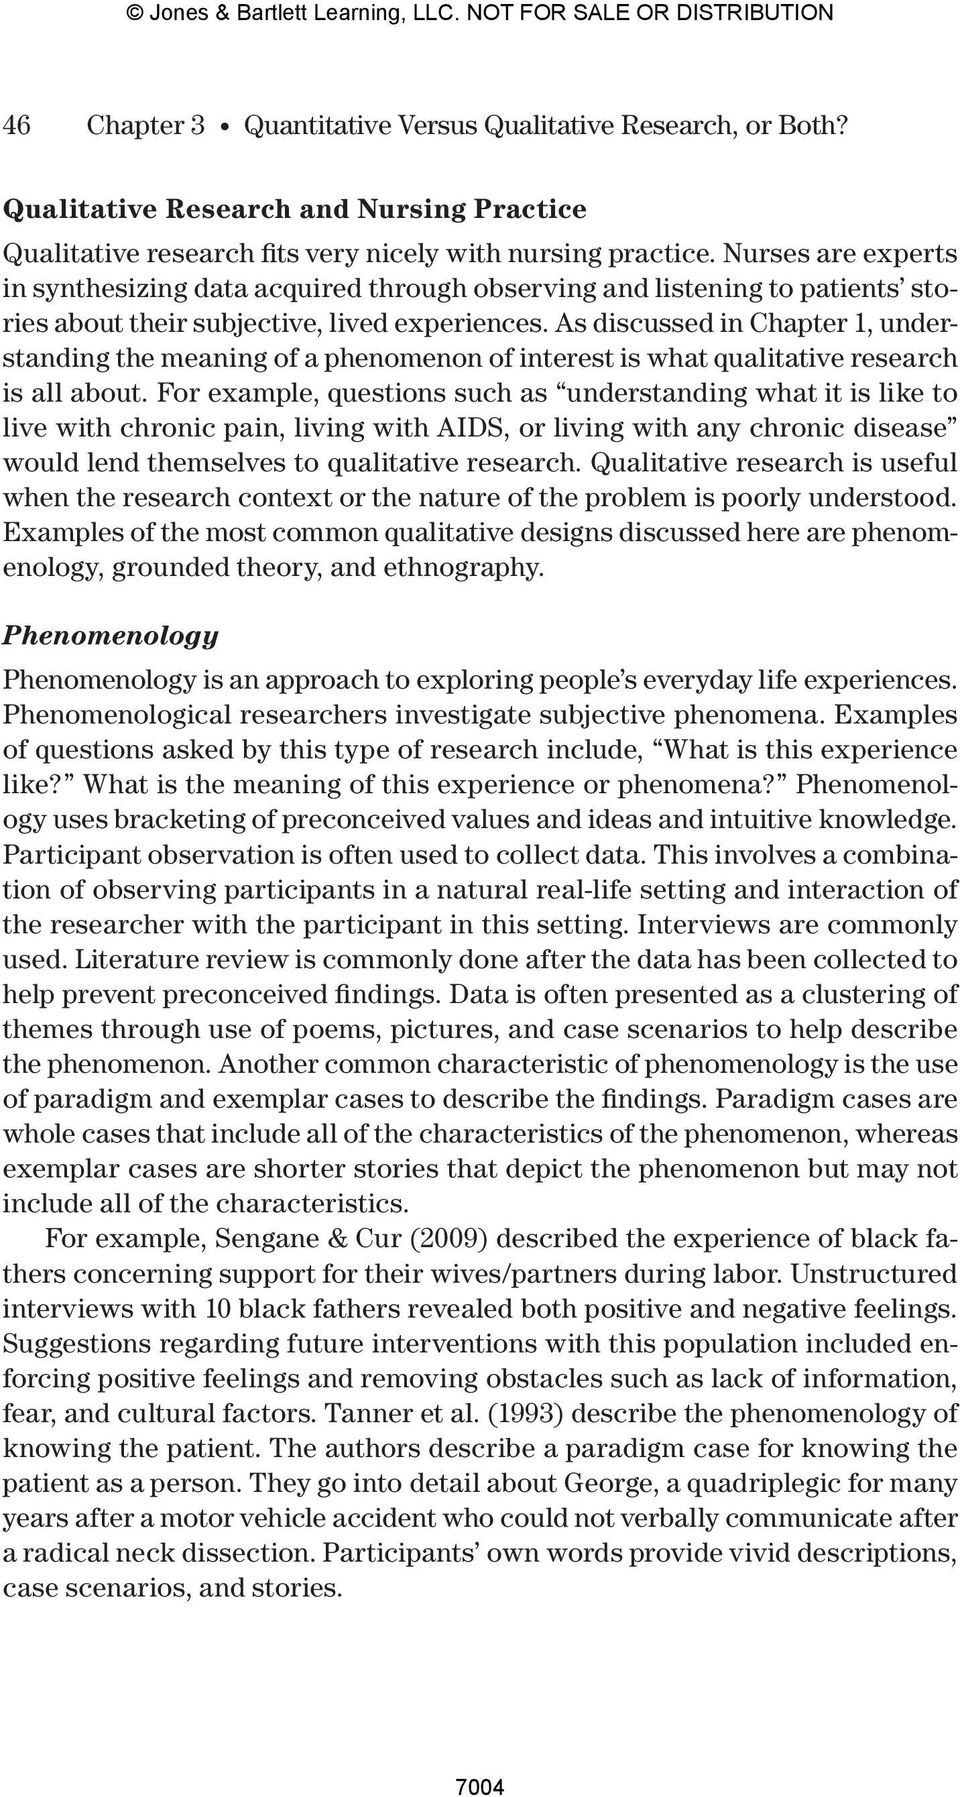 As discussed in Chapter 1, understanding the meaning of a phenomenon of interest is what qualitative research is all about.